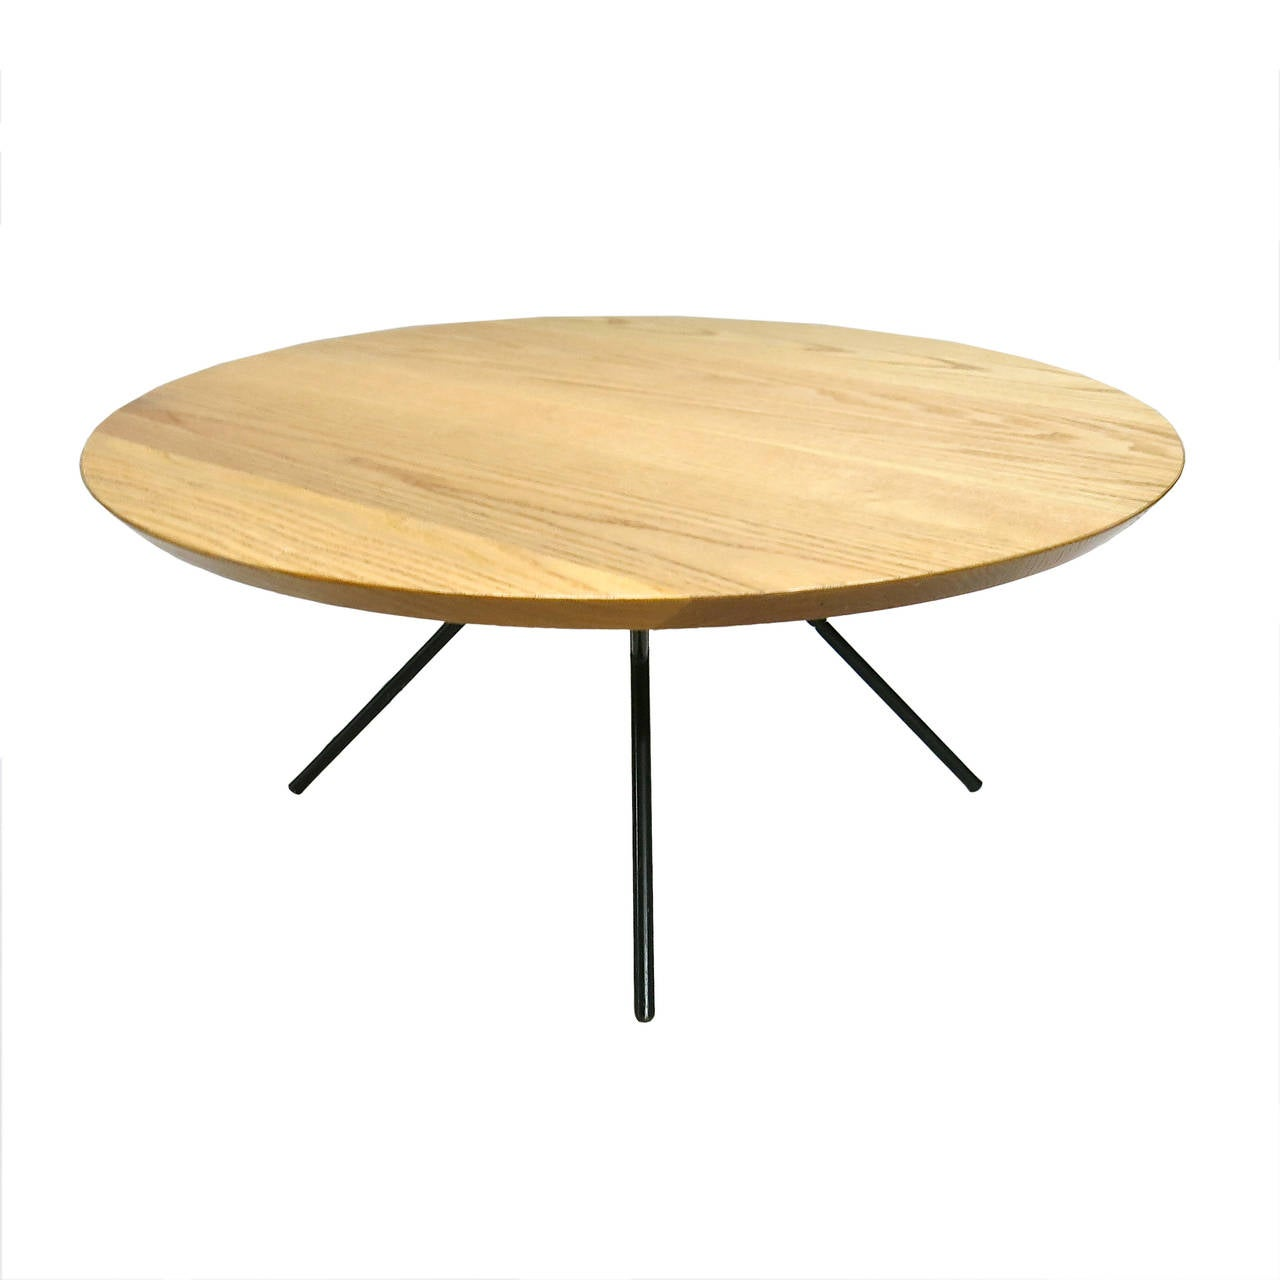 Table Top 1955: Coffee Table Attributed To Pierre Guariche Circa 1955 Made